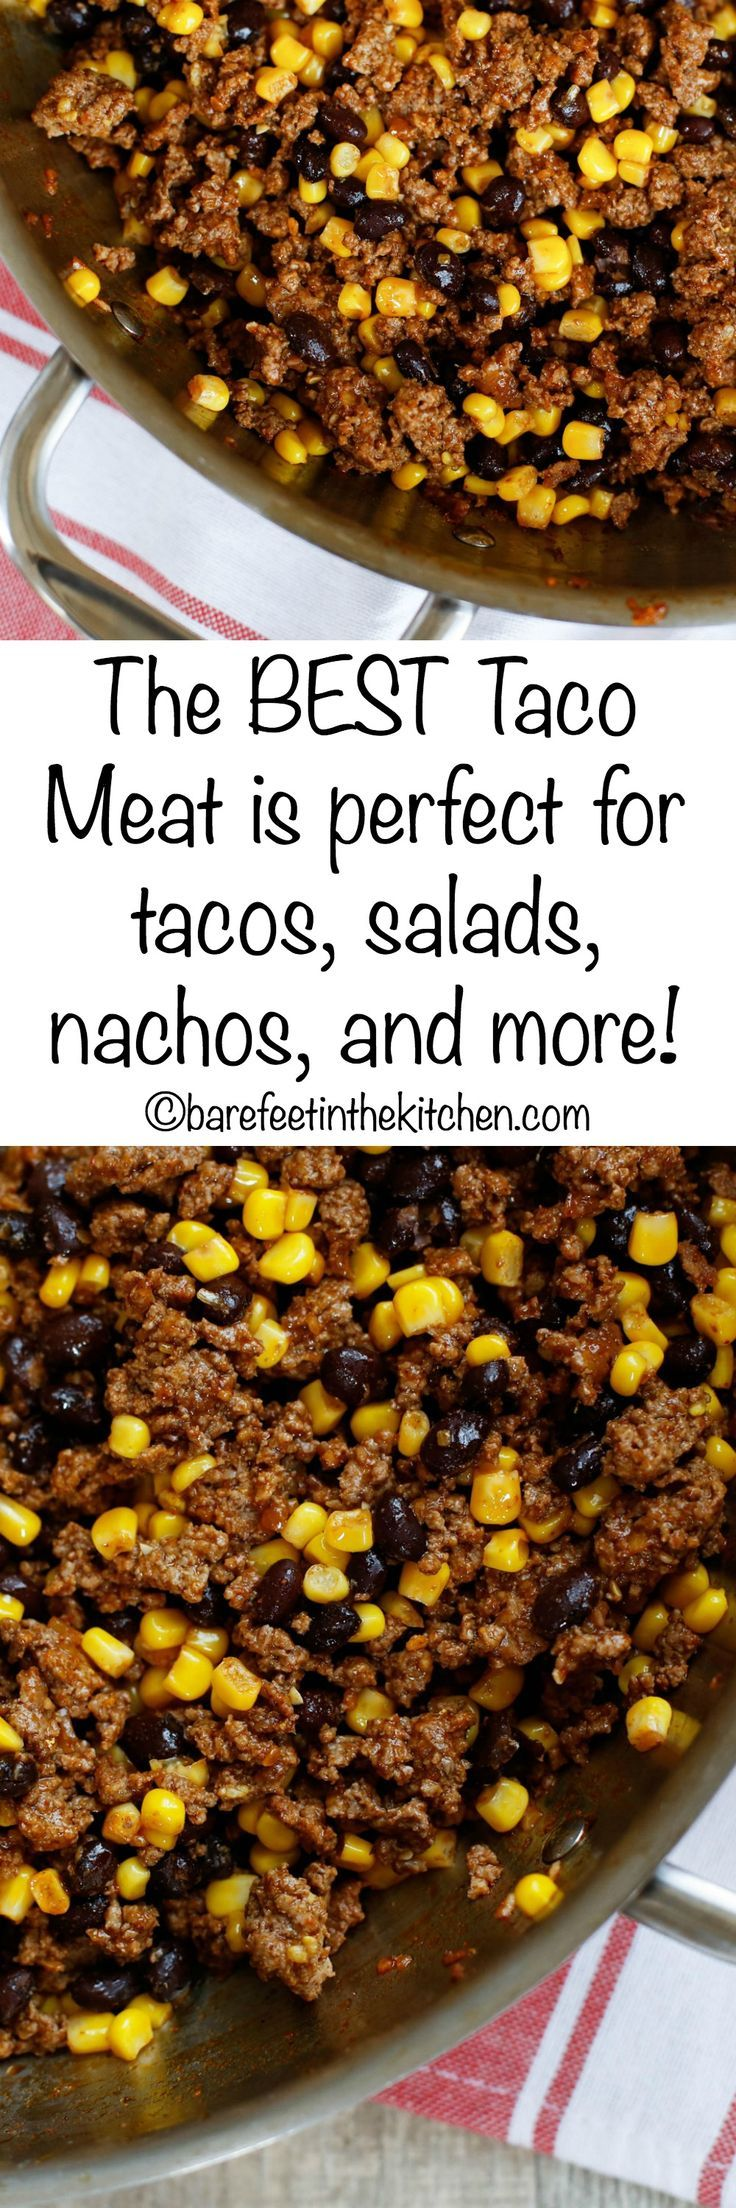 The BEST Taco Meat is perfect for tacos, salads, nachos, burritos, and more! Get the recipe at barefeetinthekitchen.com